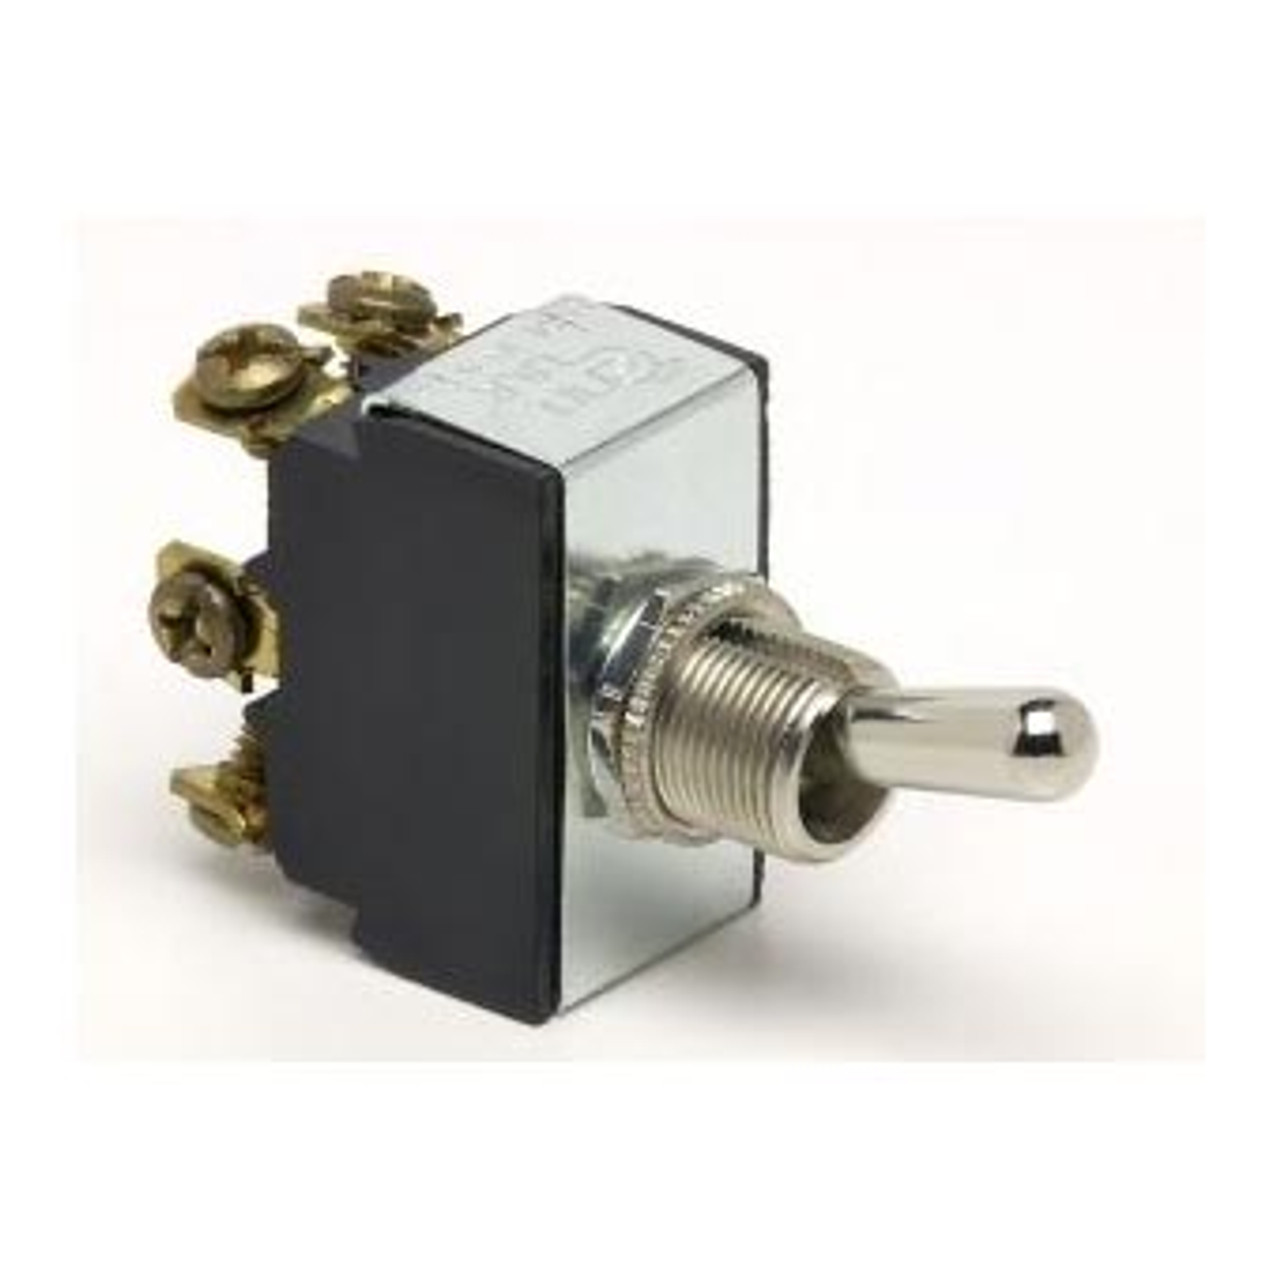 TOGGLE SWIT ON-ON 6 S/T DPDT 6 SCREW TERMINALS